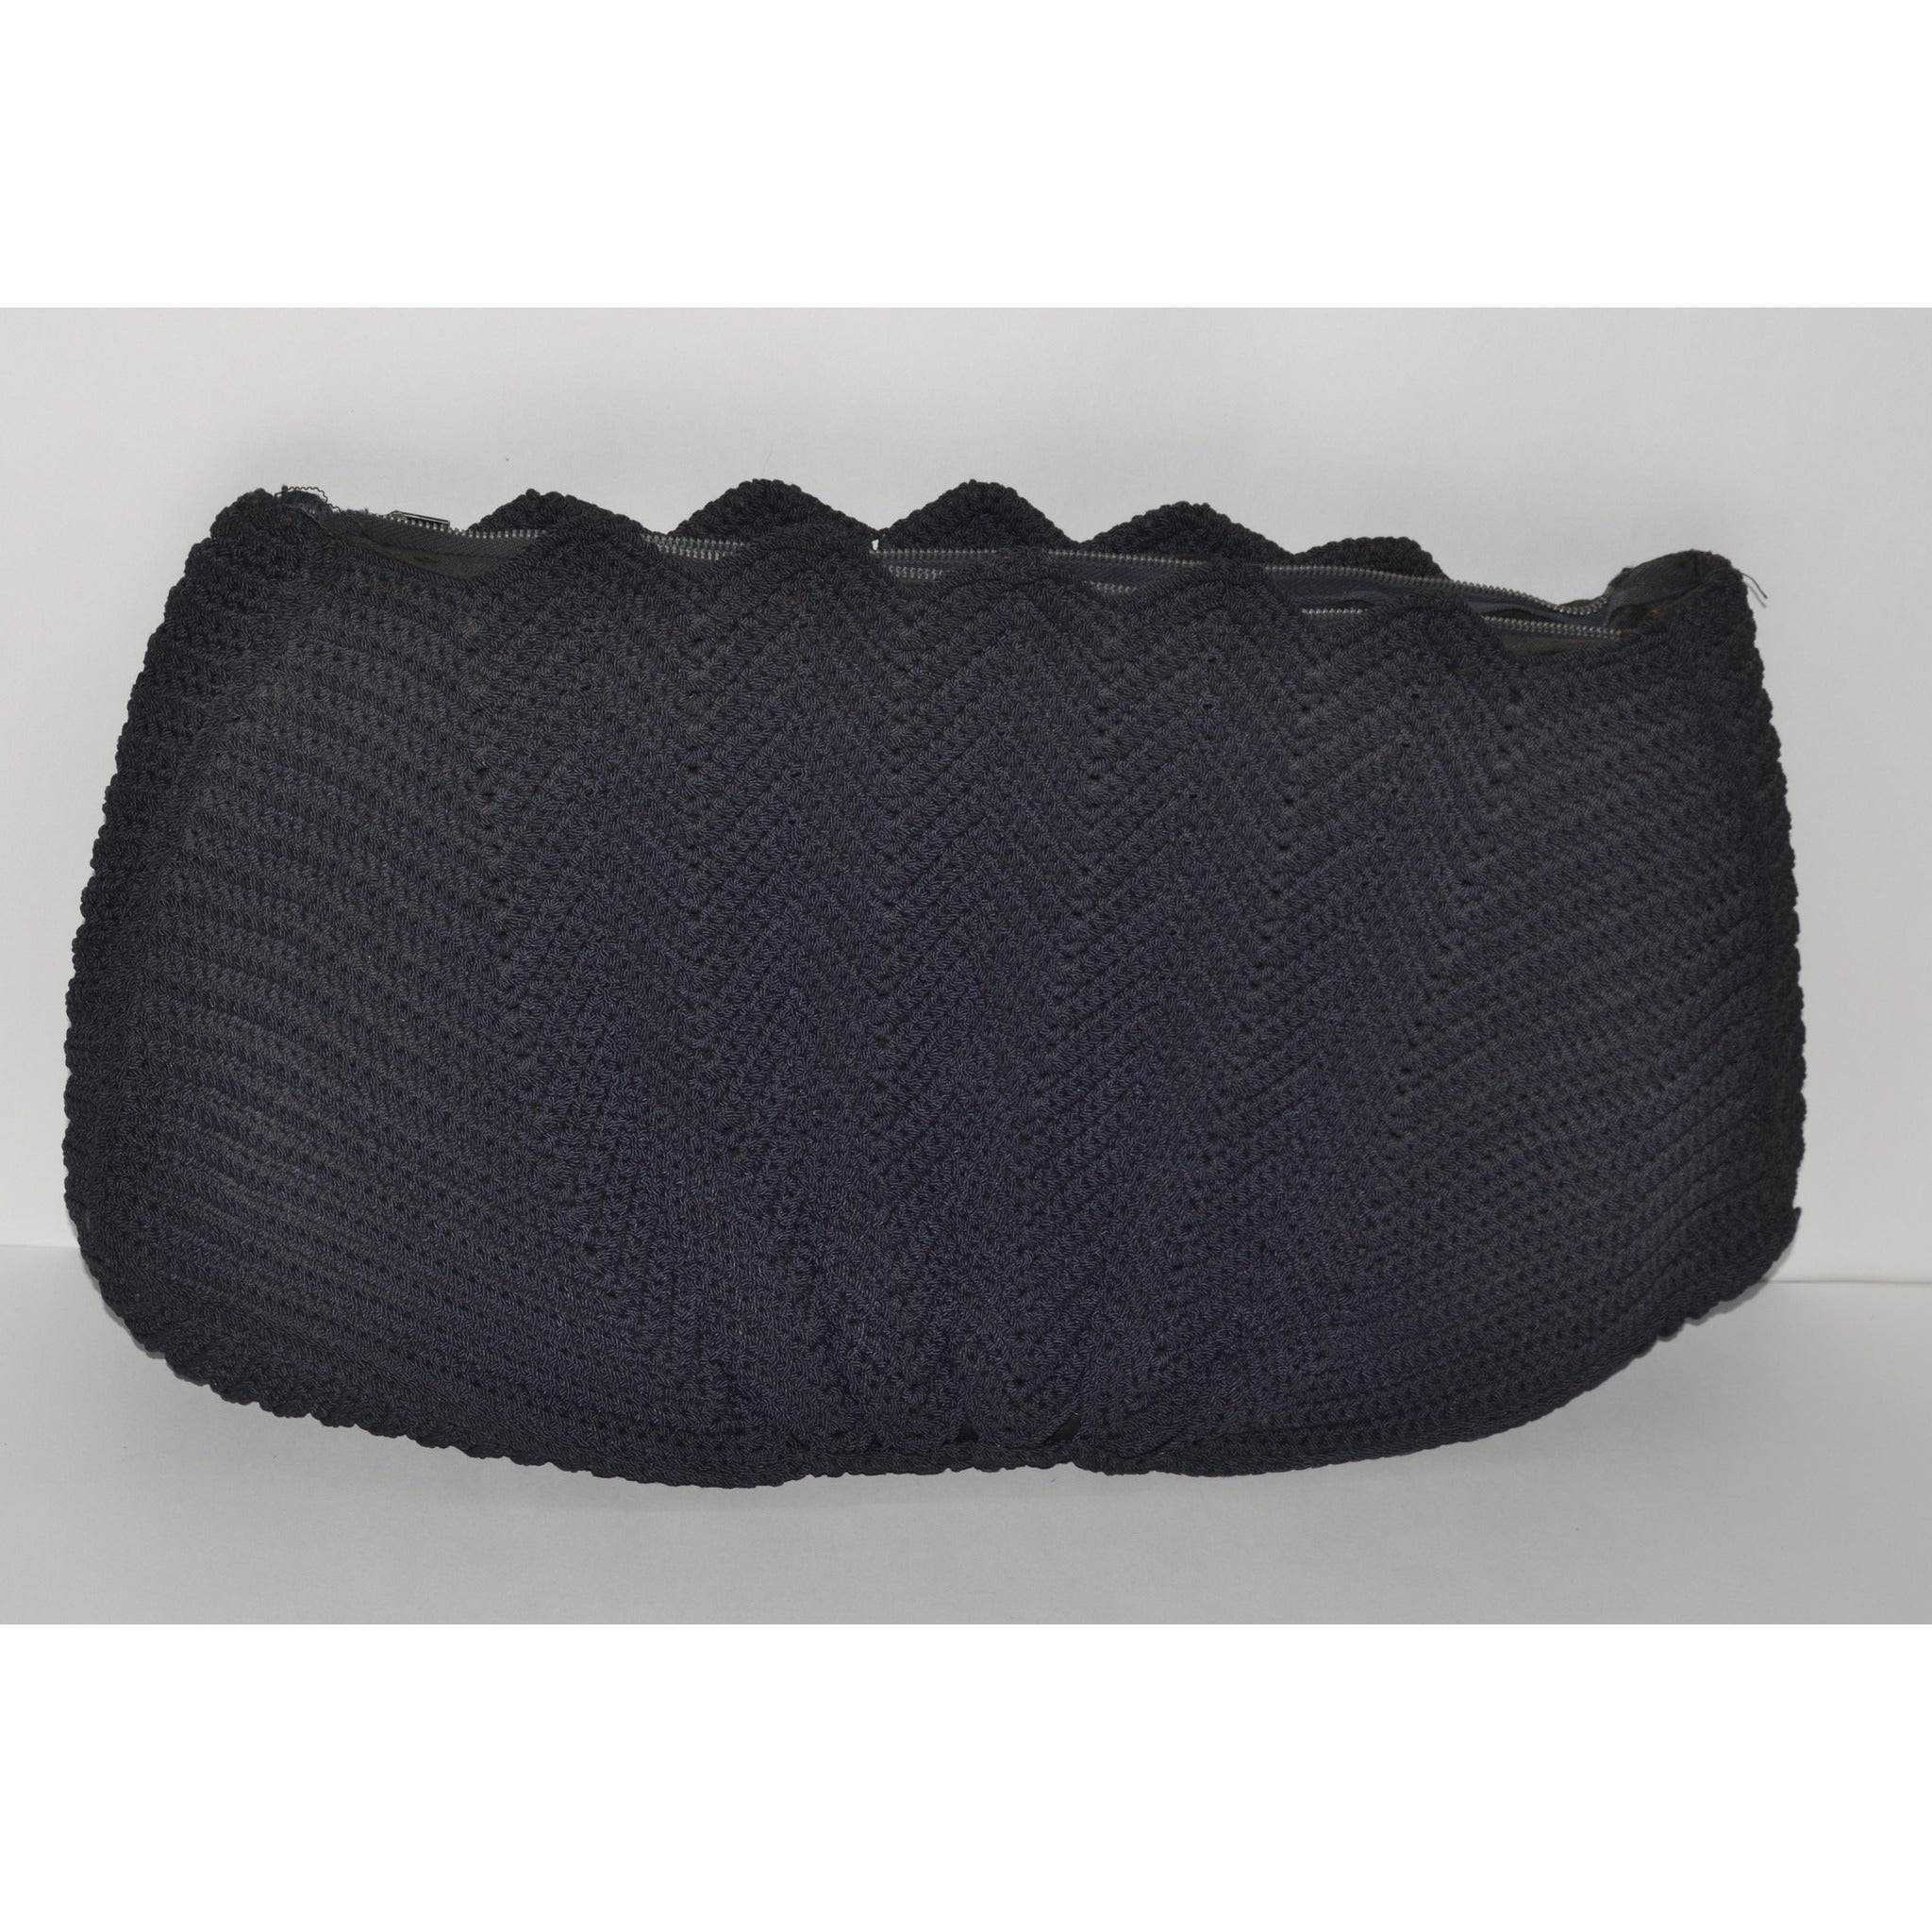 Vintage Black Crochet Fan Clutch Purse